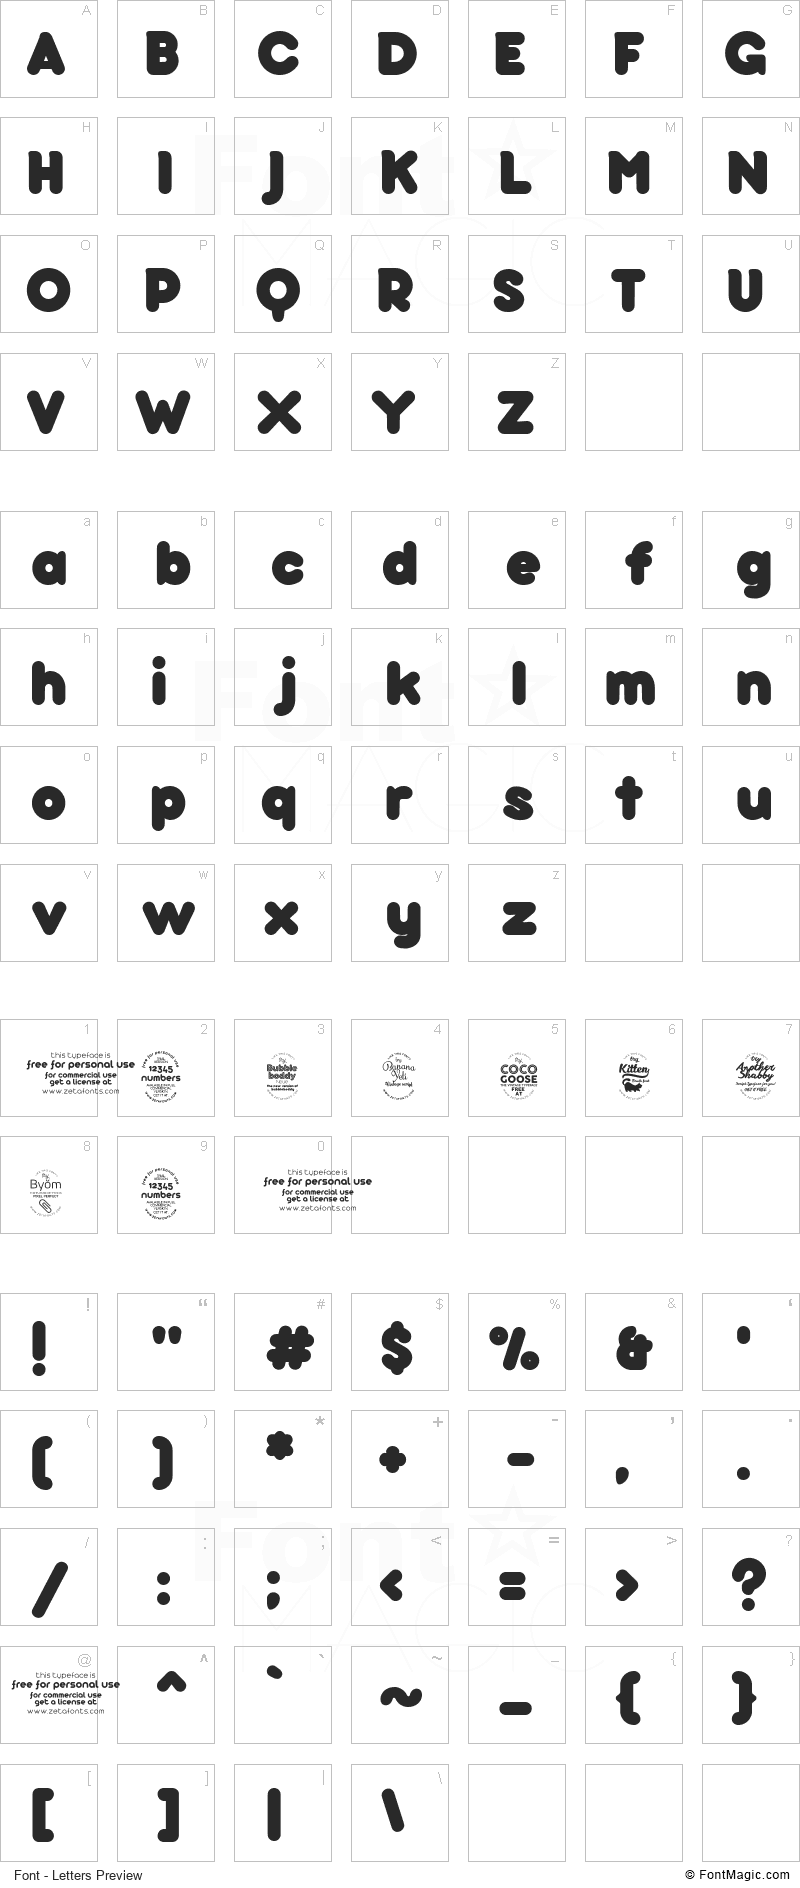 Bubbleboddy Font - All Latters Preview Chart